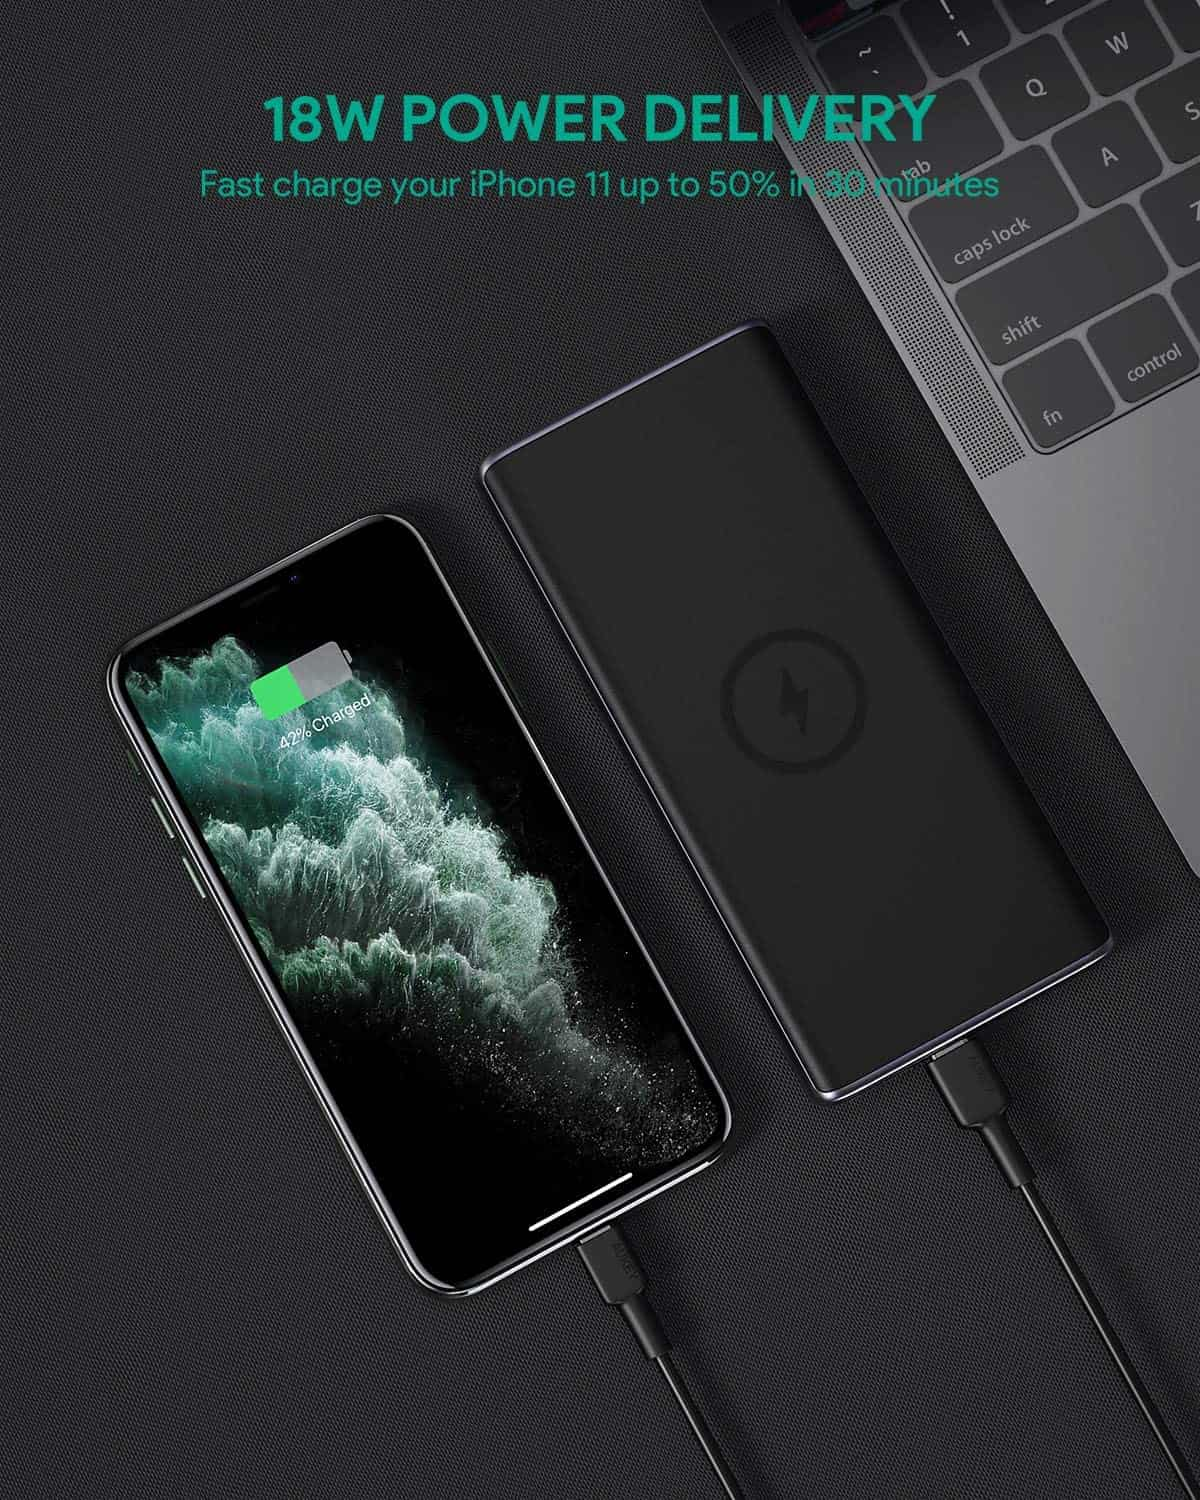 AUKEY Wireless Power Bank for iPhone